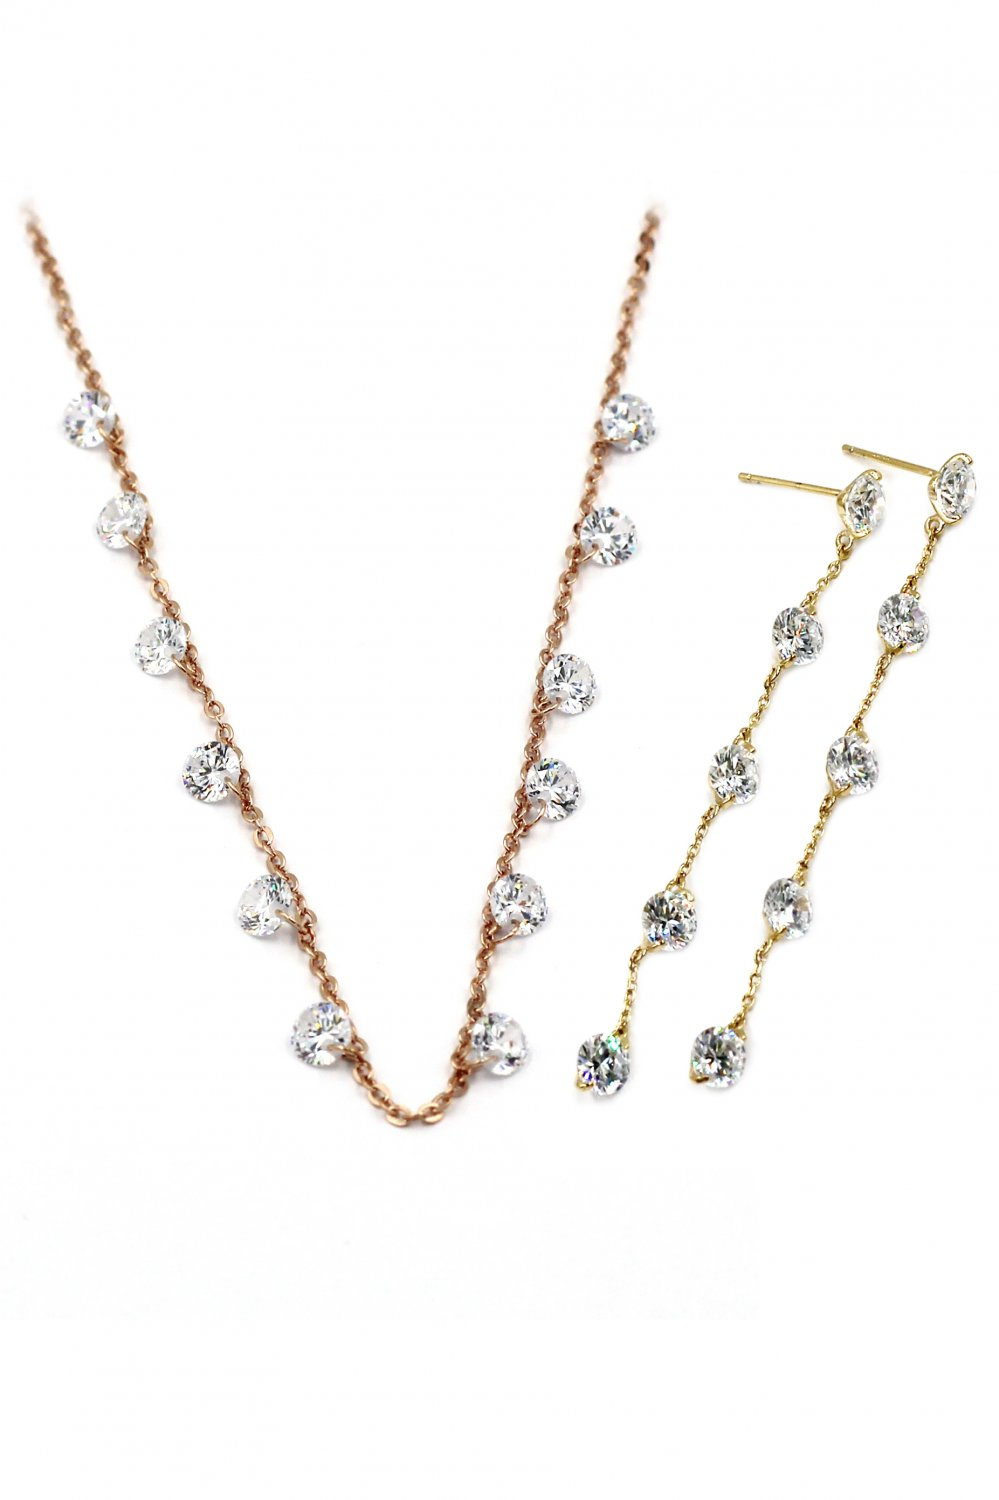 Small crystal fine chain necklace earrings gold set